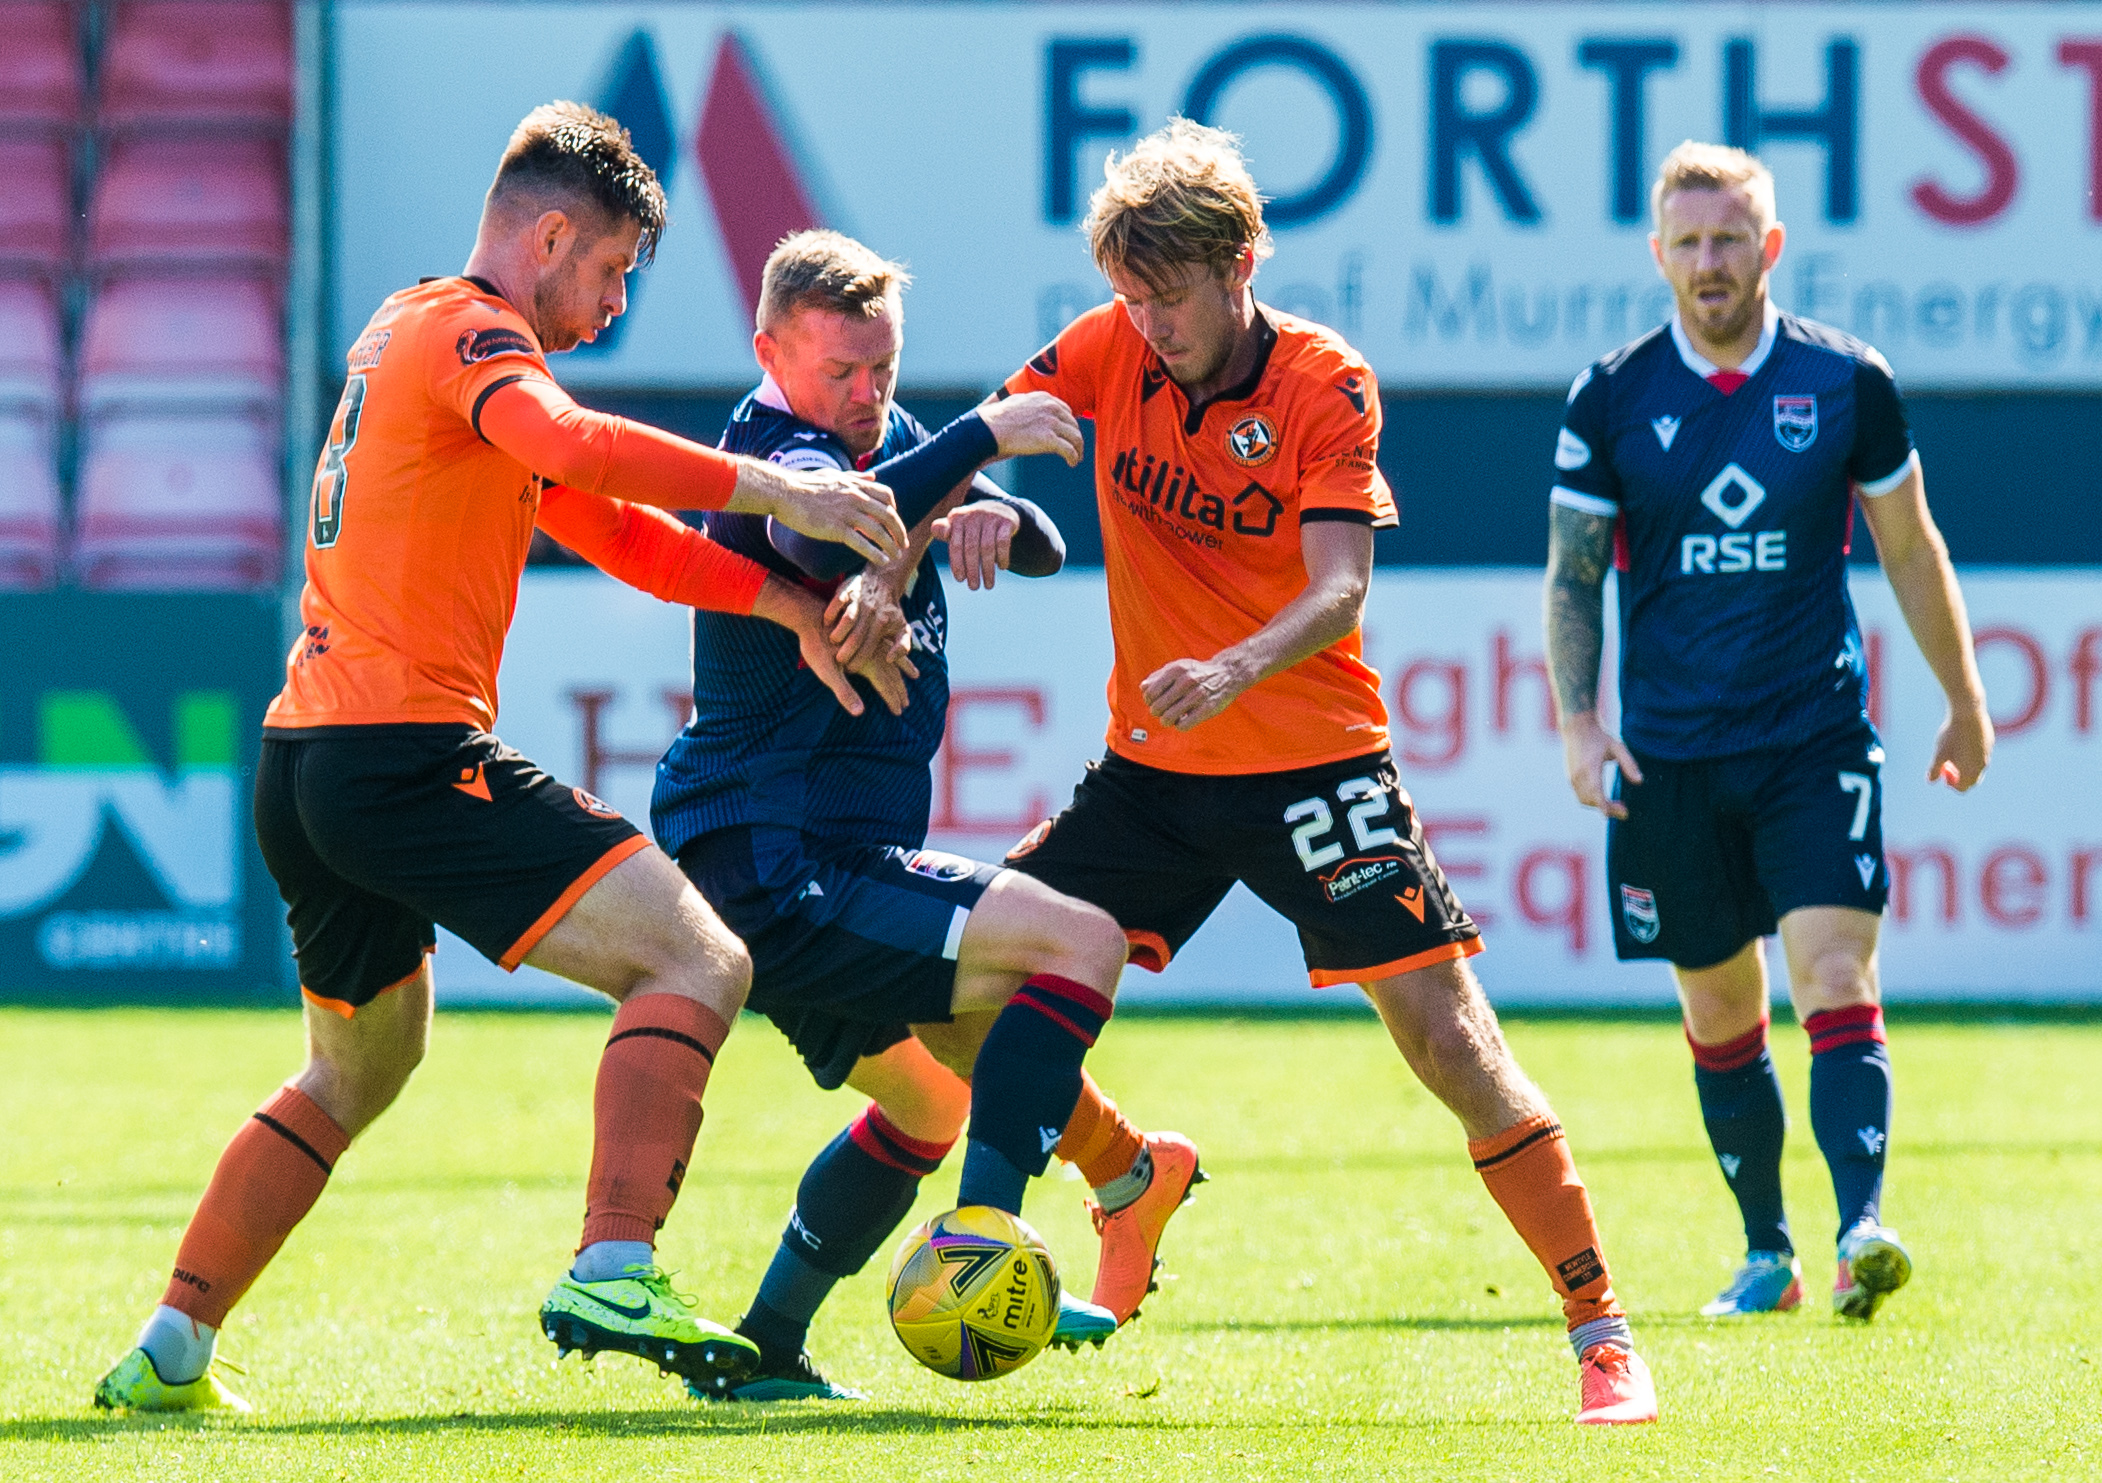 Kieran Freeman made his Dundee United debut against Ross County earlier this month.